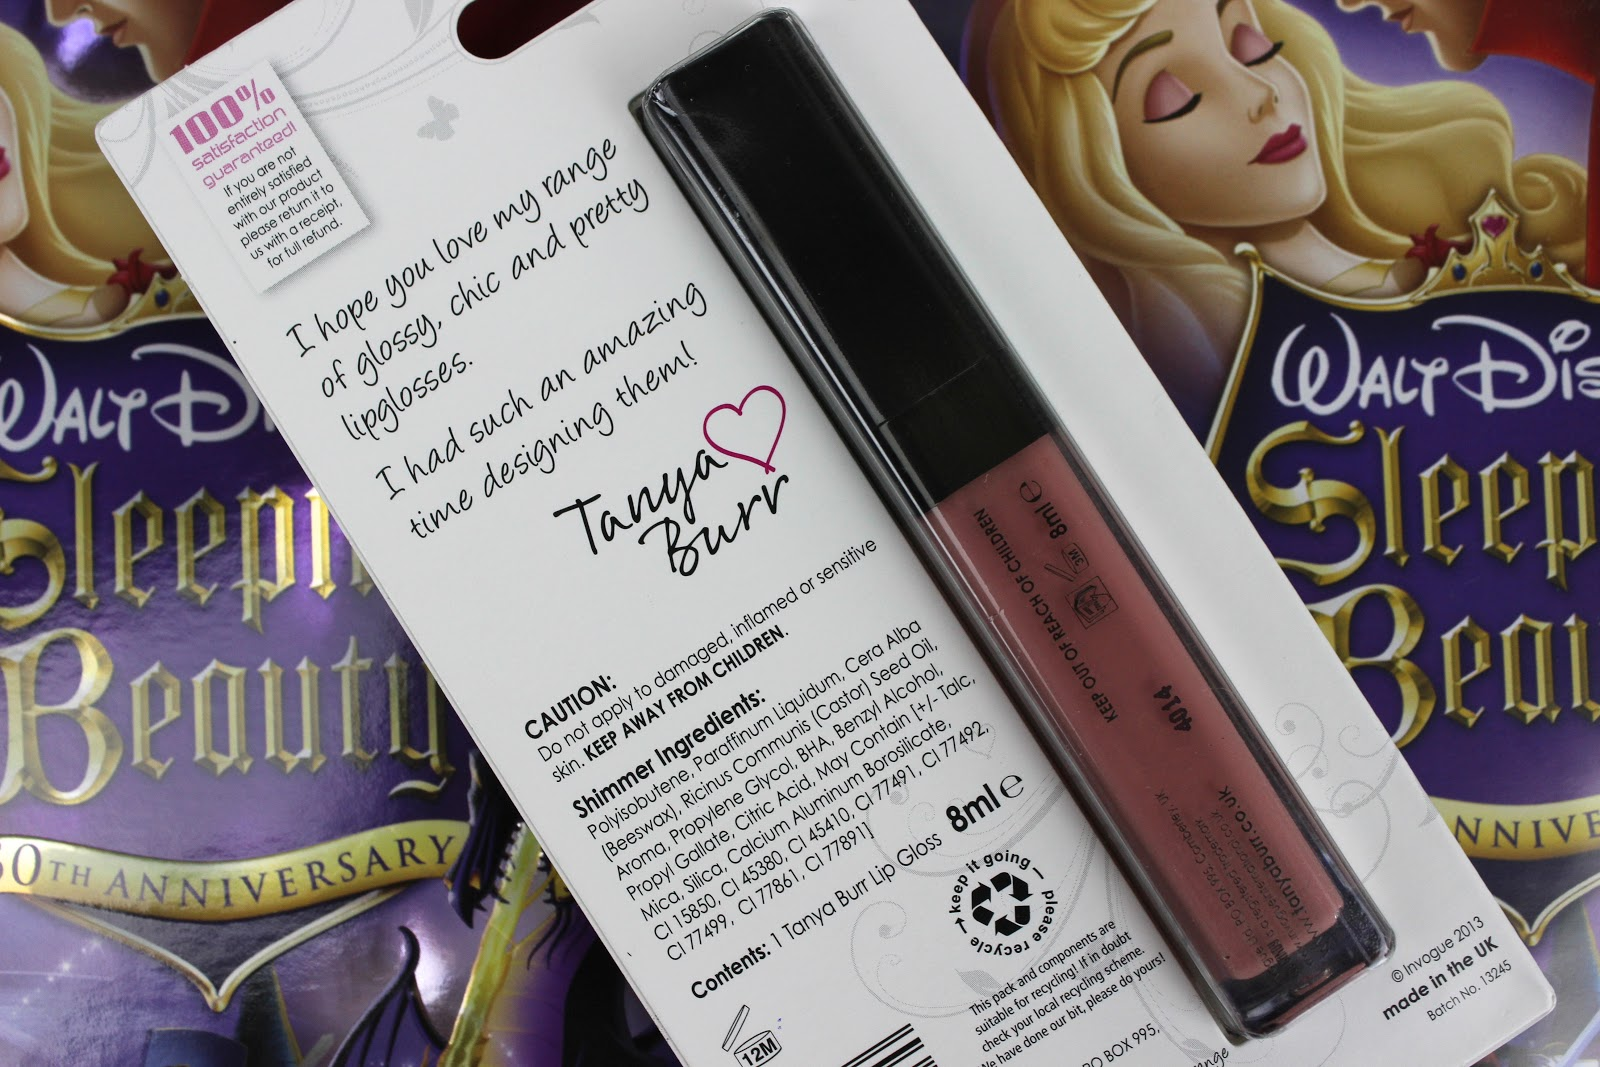 Packaging of Tanya Burr Lips and Nails Lipgloss